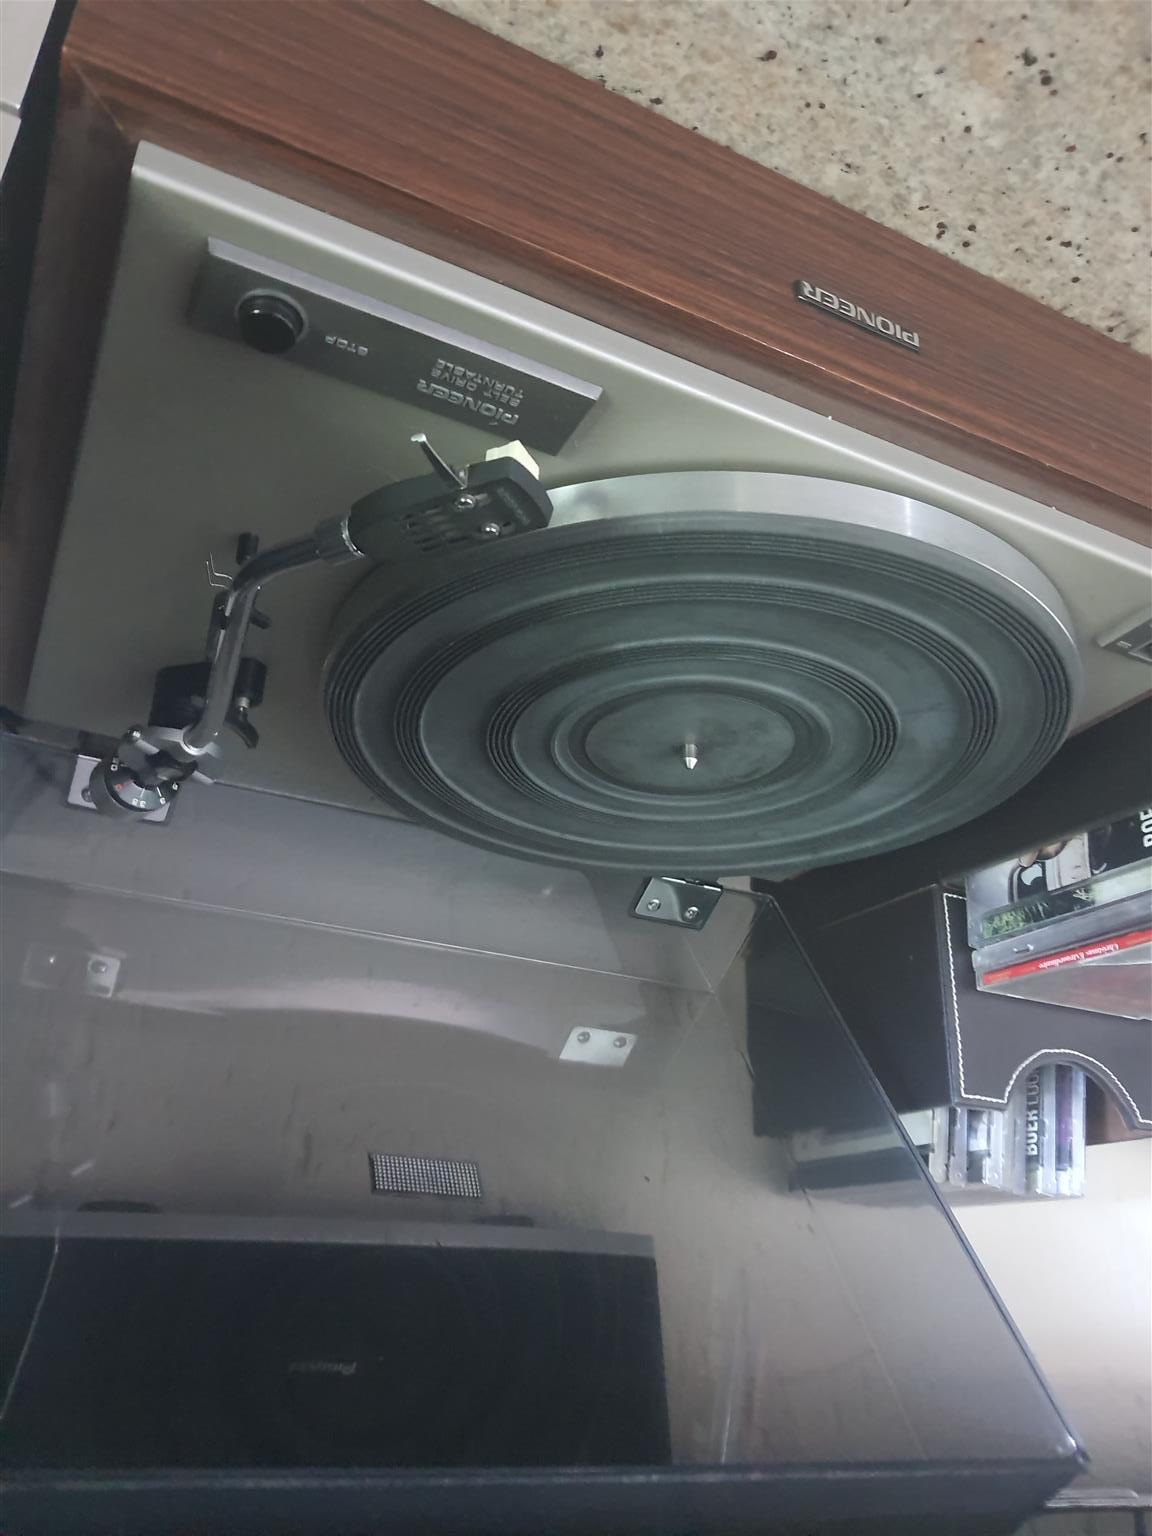 Record and cassette player with amp and speakers